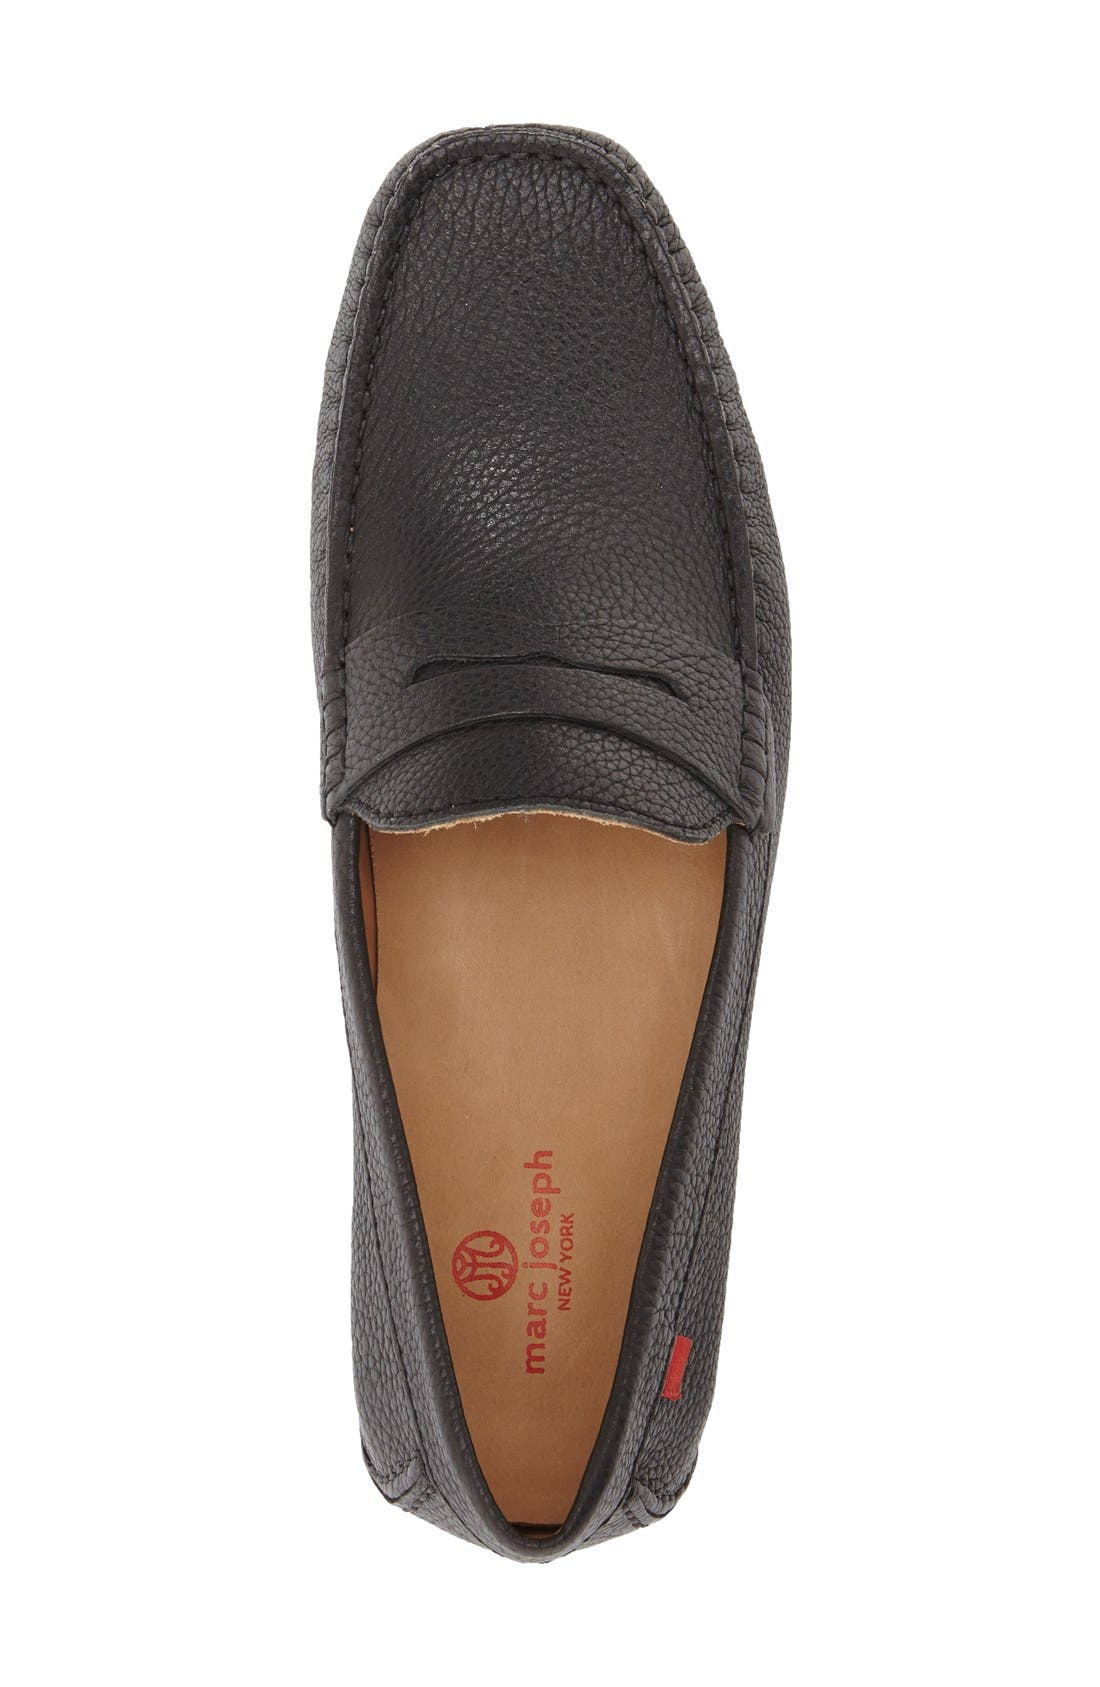 'Union Street' Penny Loafer,                             Alternate thumbnail 9, color,